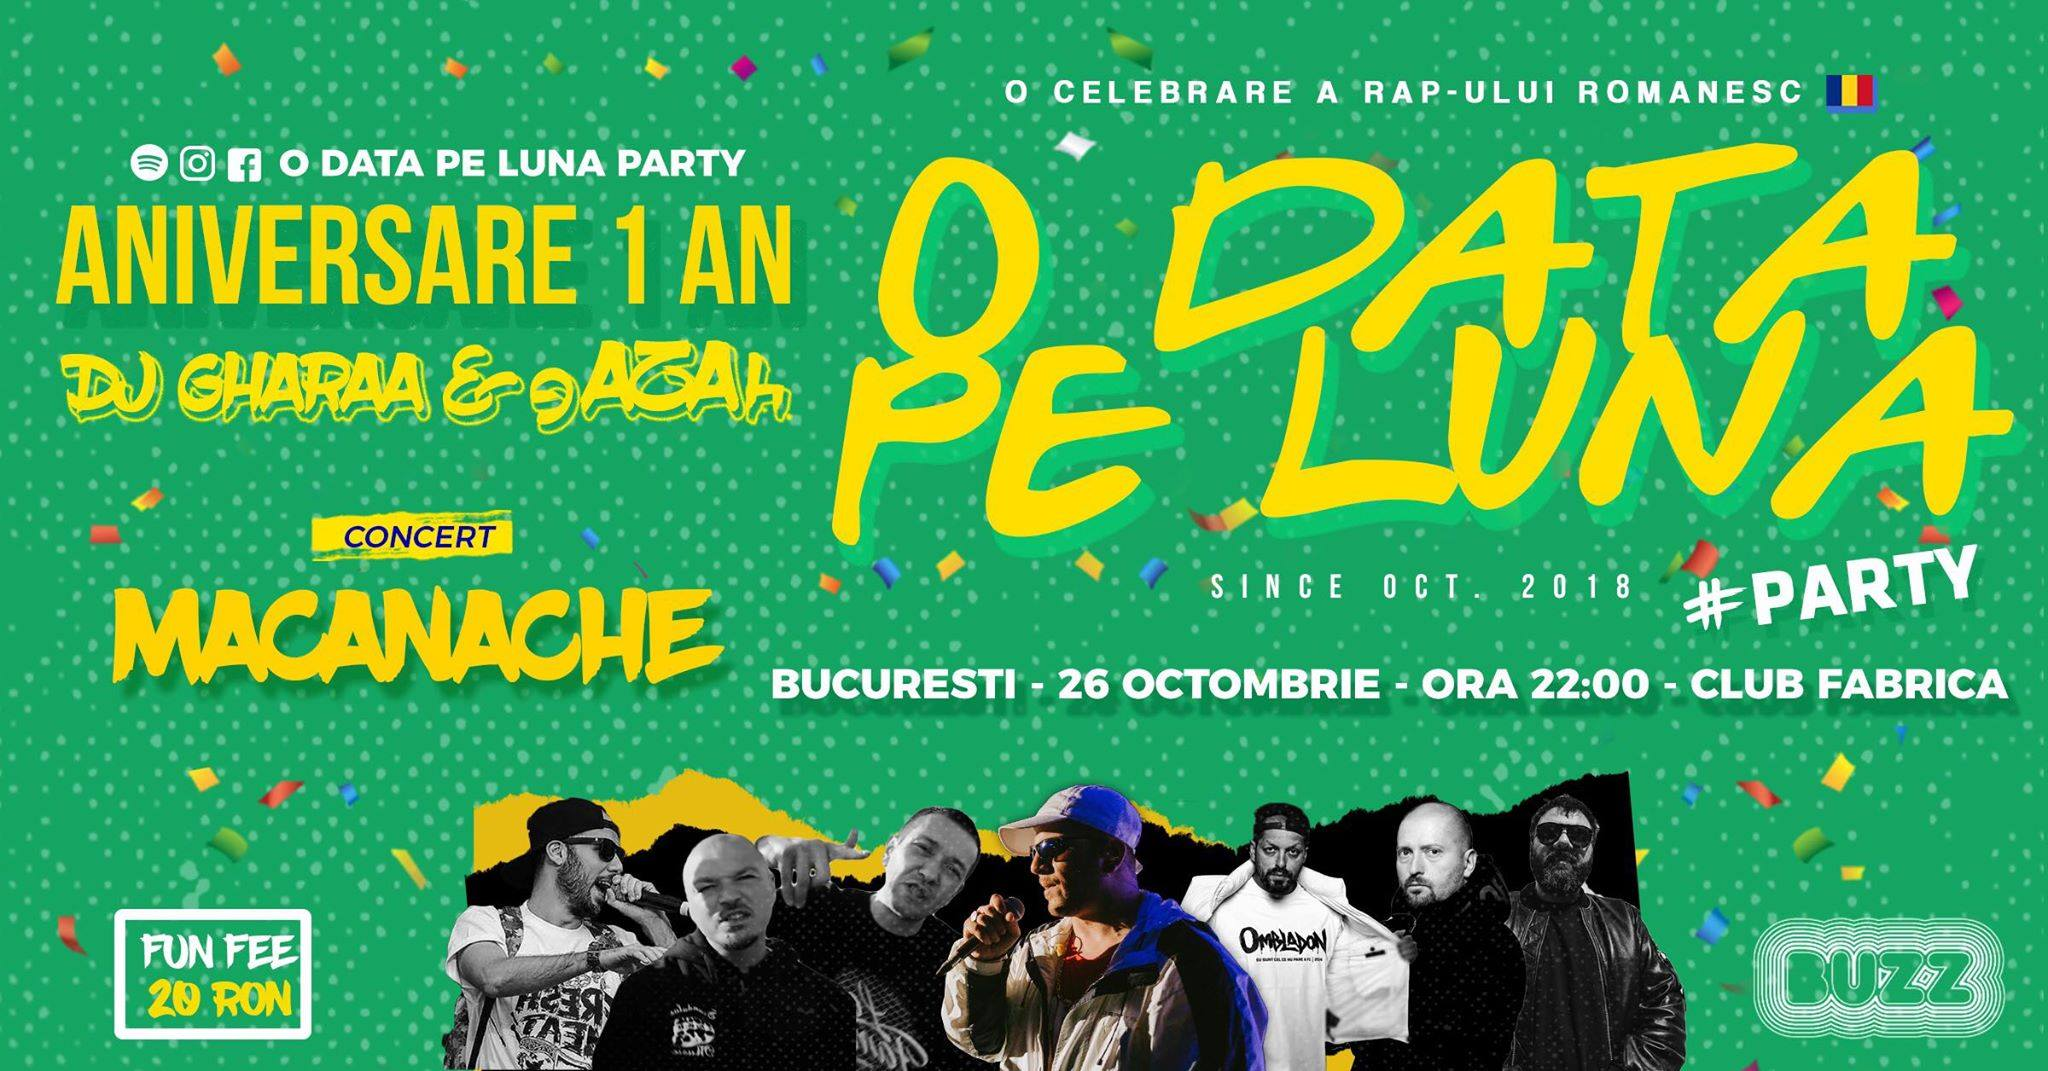 O Data Pe Luna Party w gAZAh & DJ Gharaa - Invitat Macanache